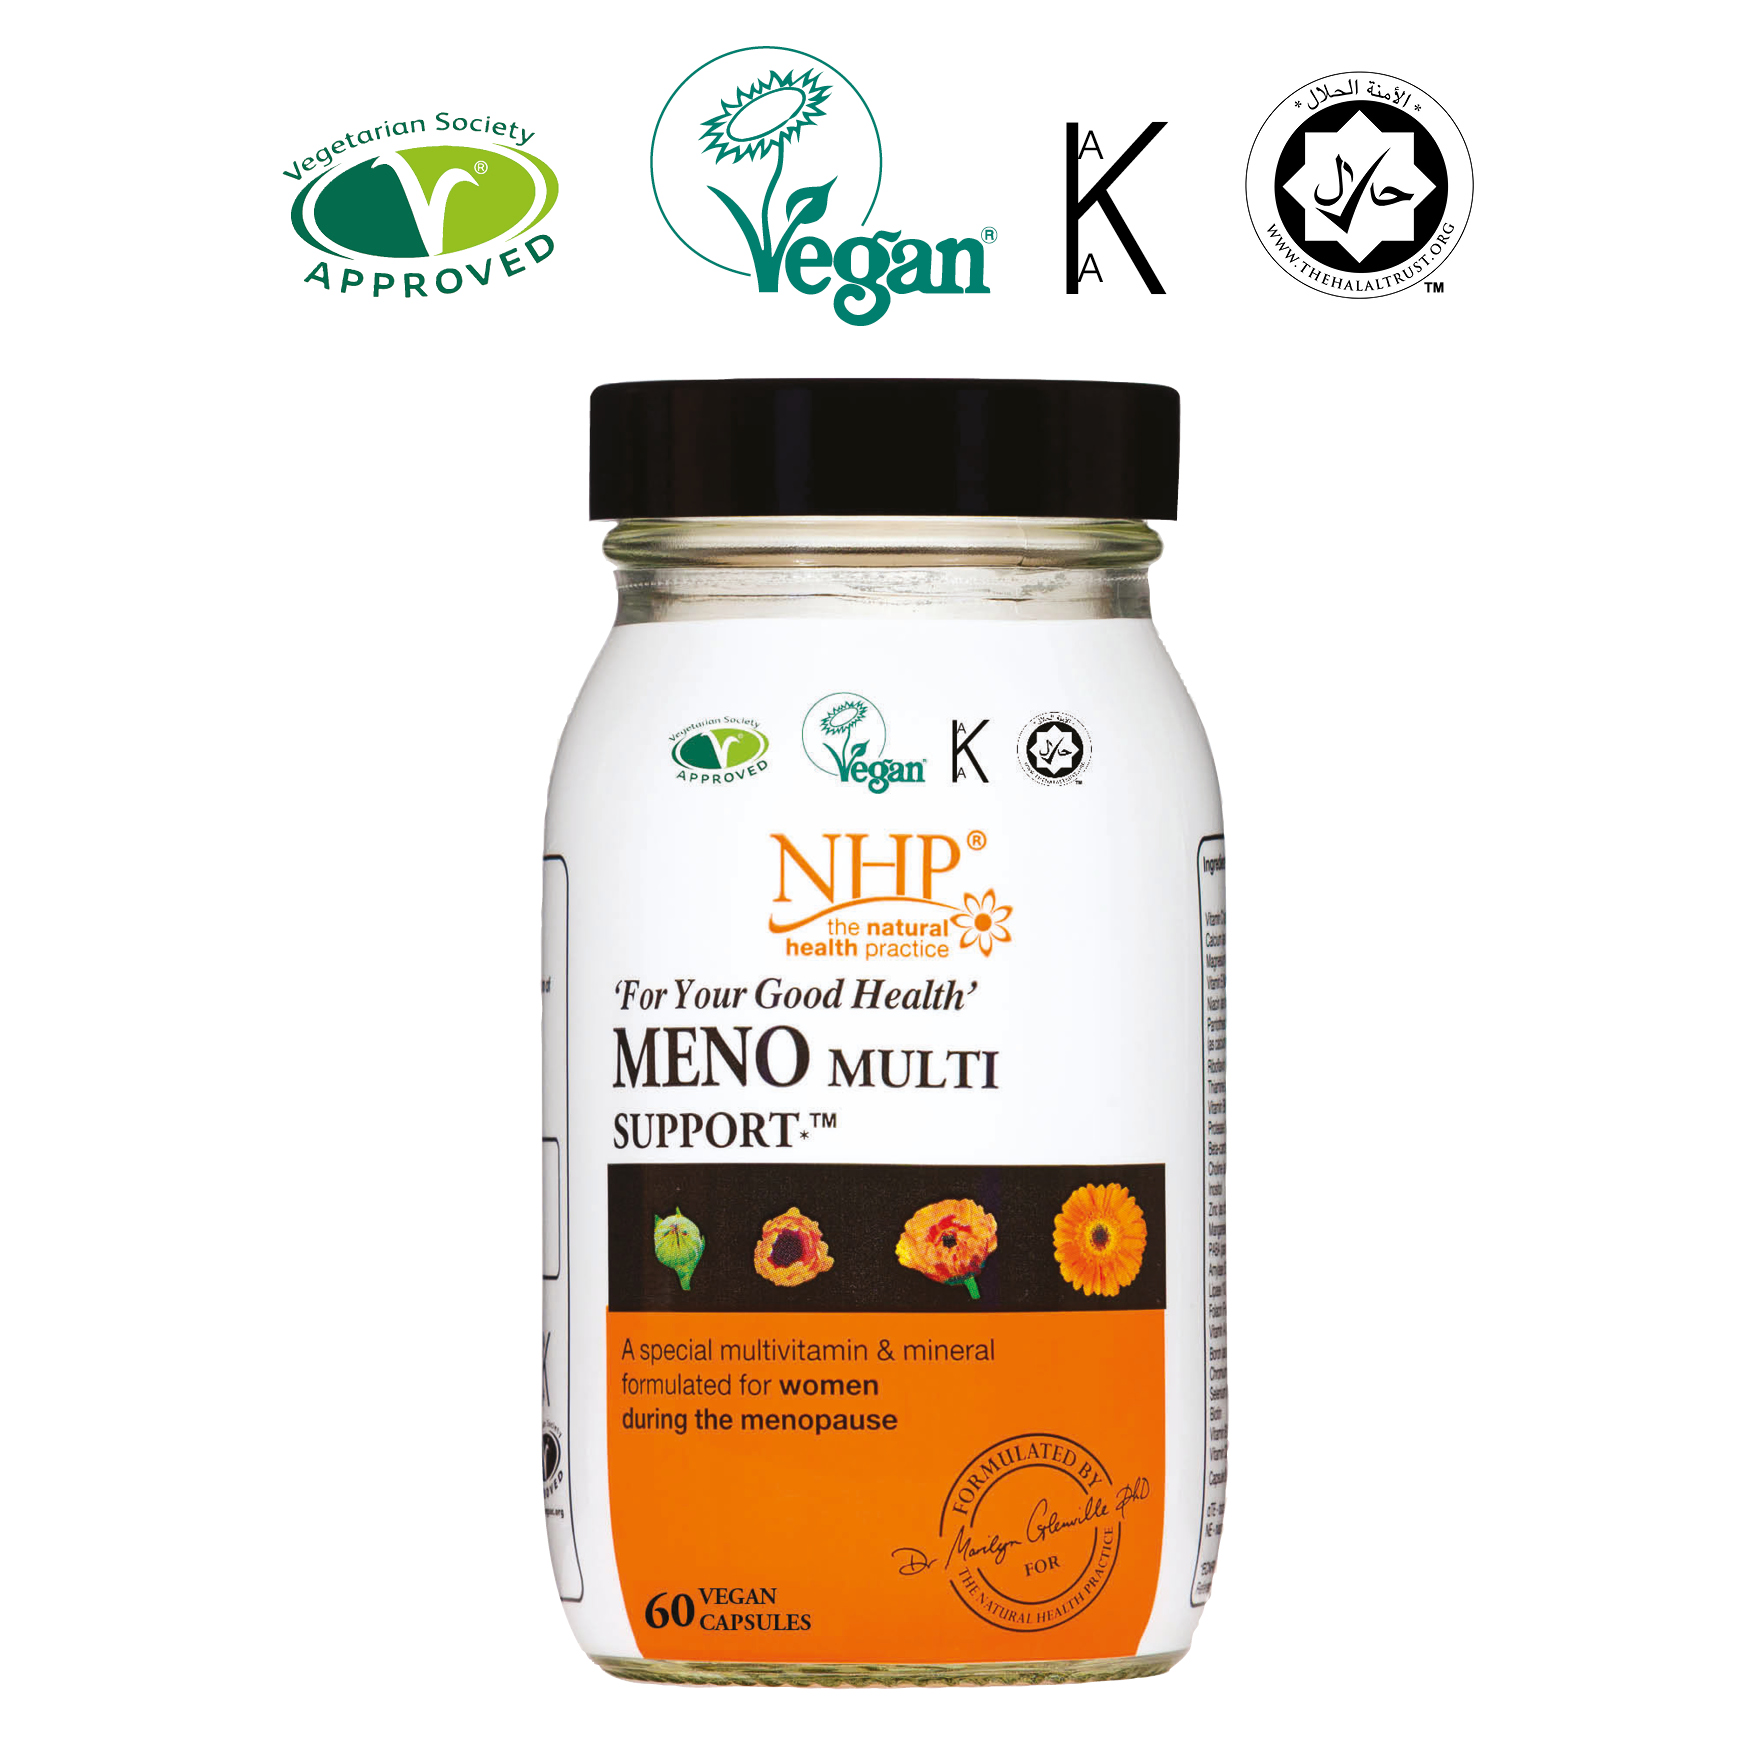 NHP Nutri Support